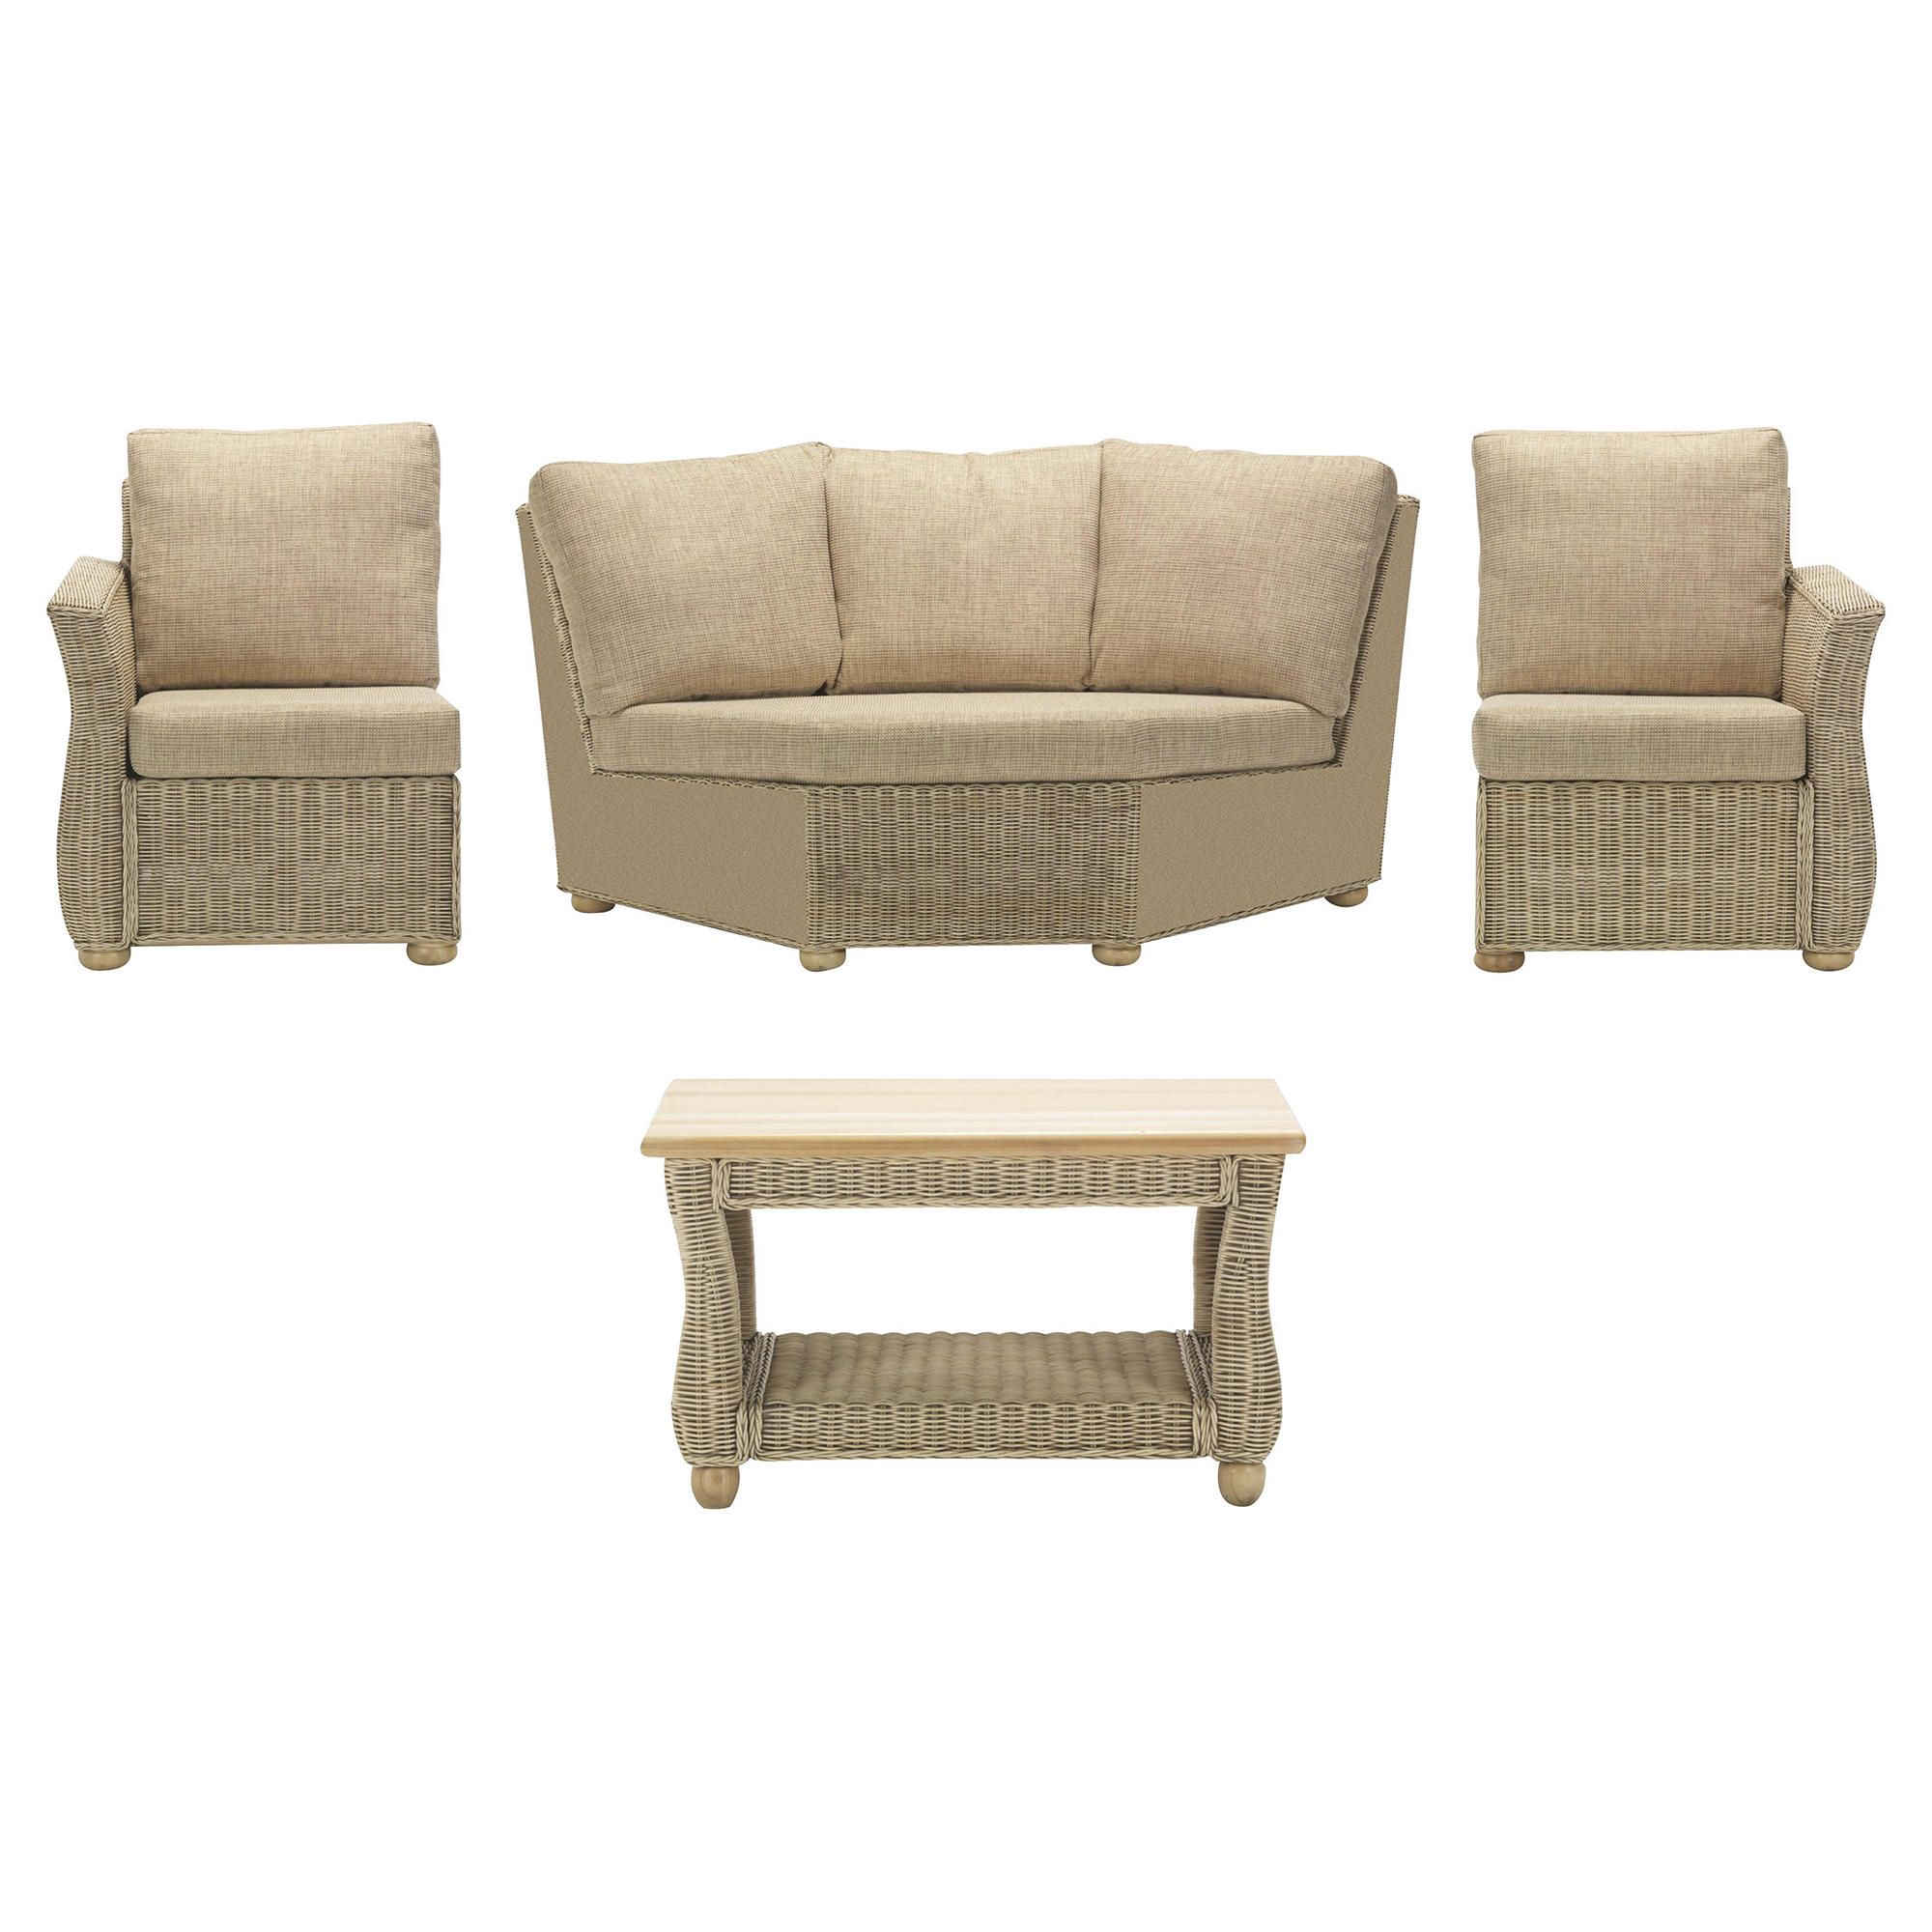 Corsica 4 Piece Suite Conservatory Set (Left, Right, Corner & Coffee table) at Tesco Direct